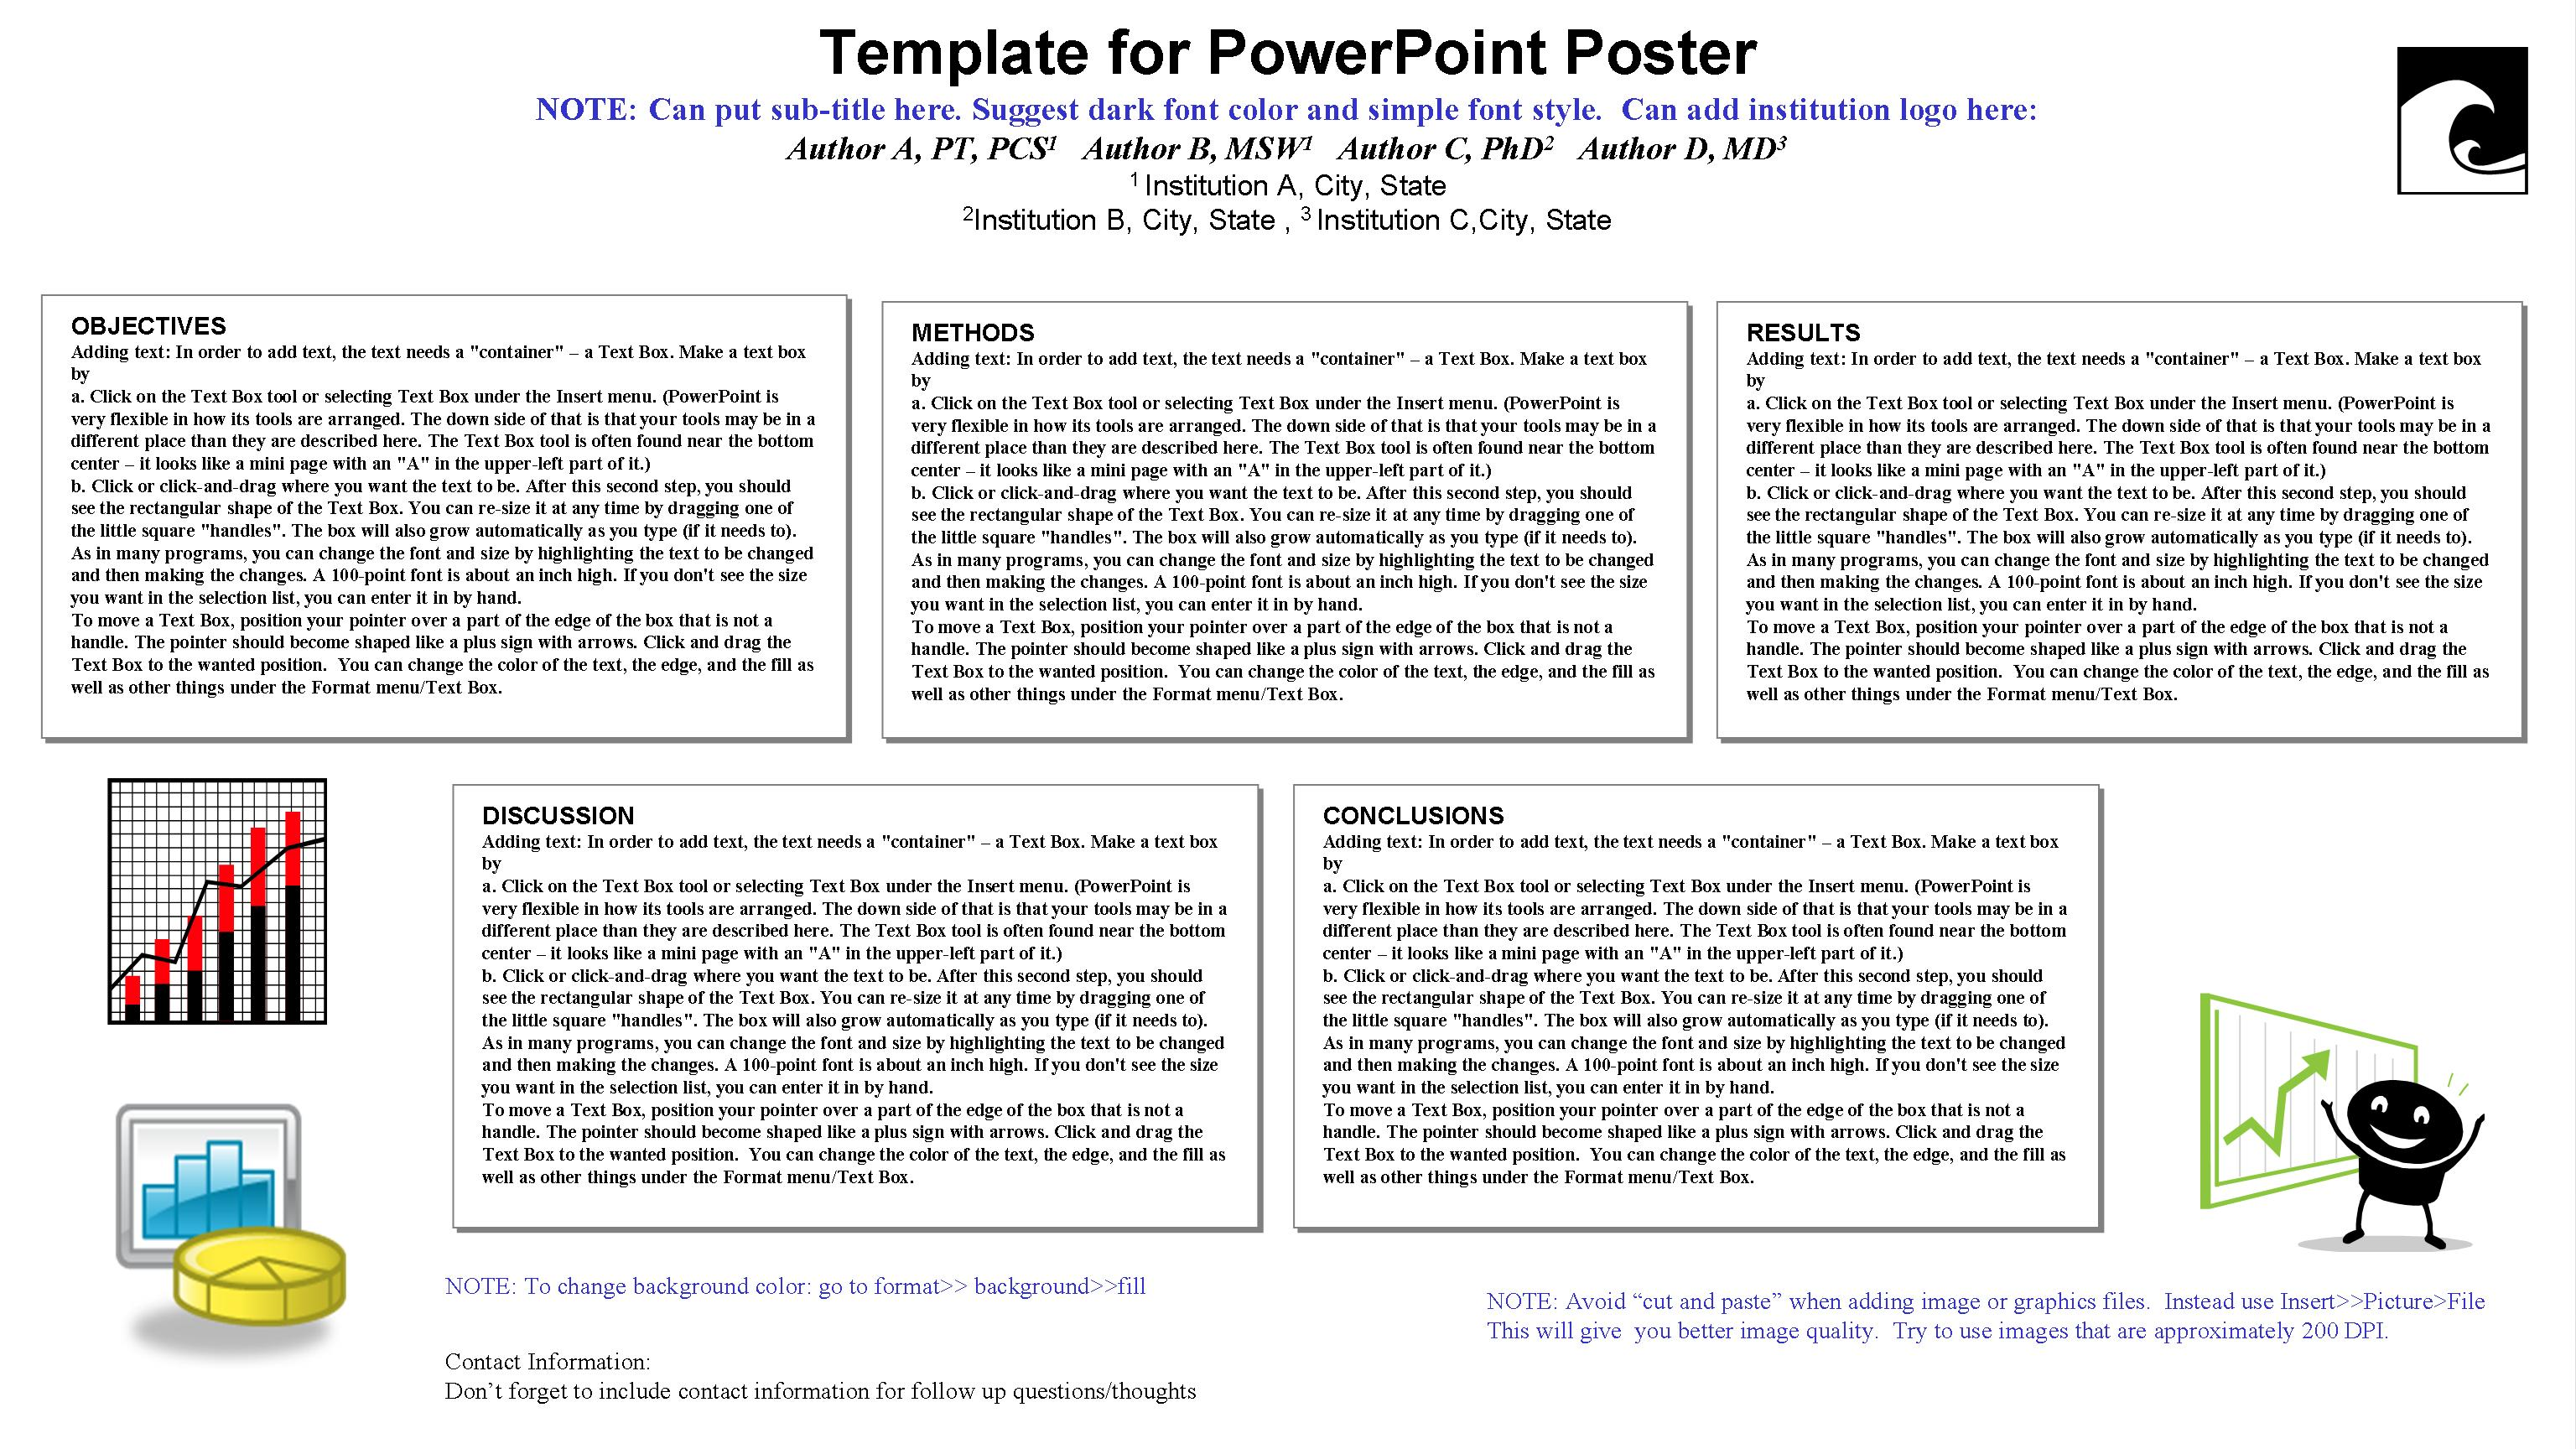 powerpoint poster template 90 x 120 gallery - templates example, Modern powerpoint